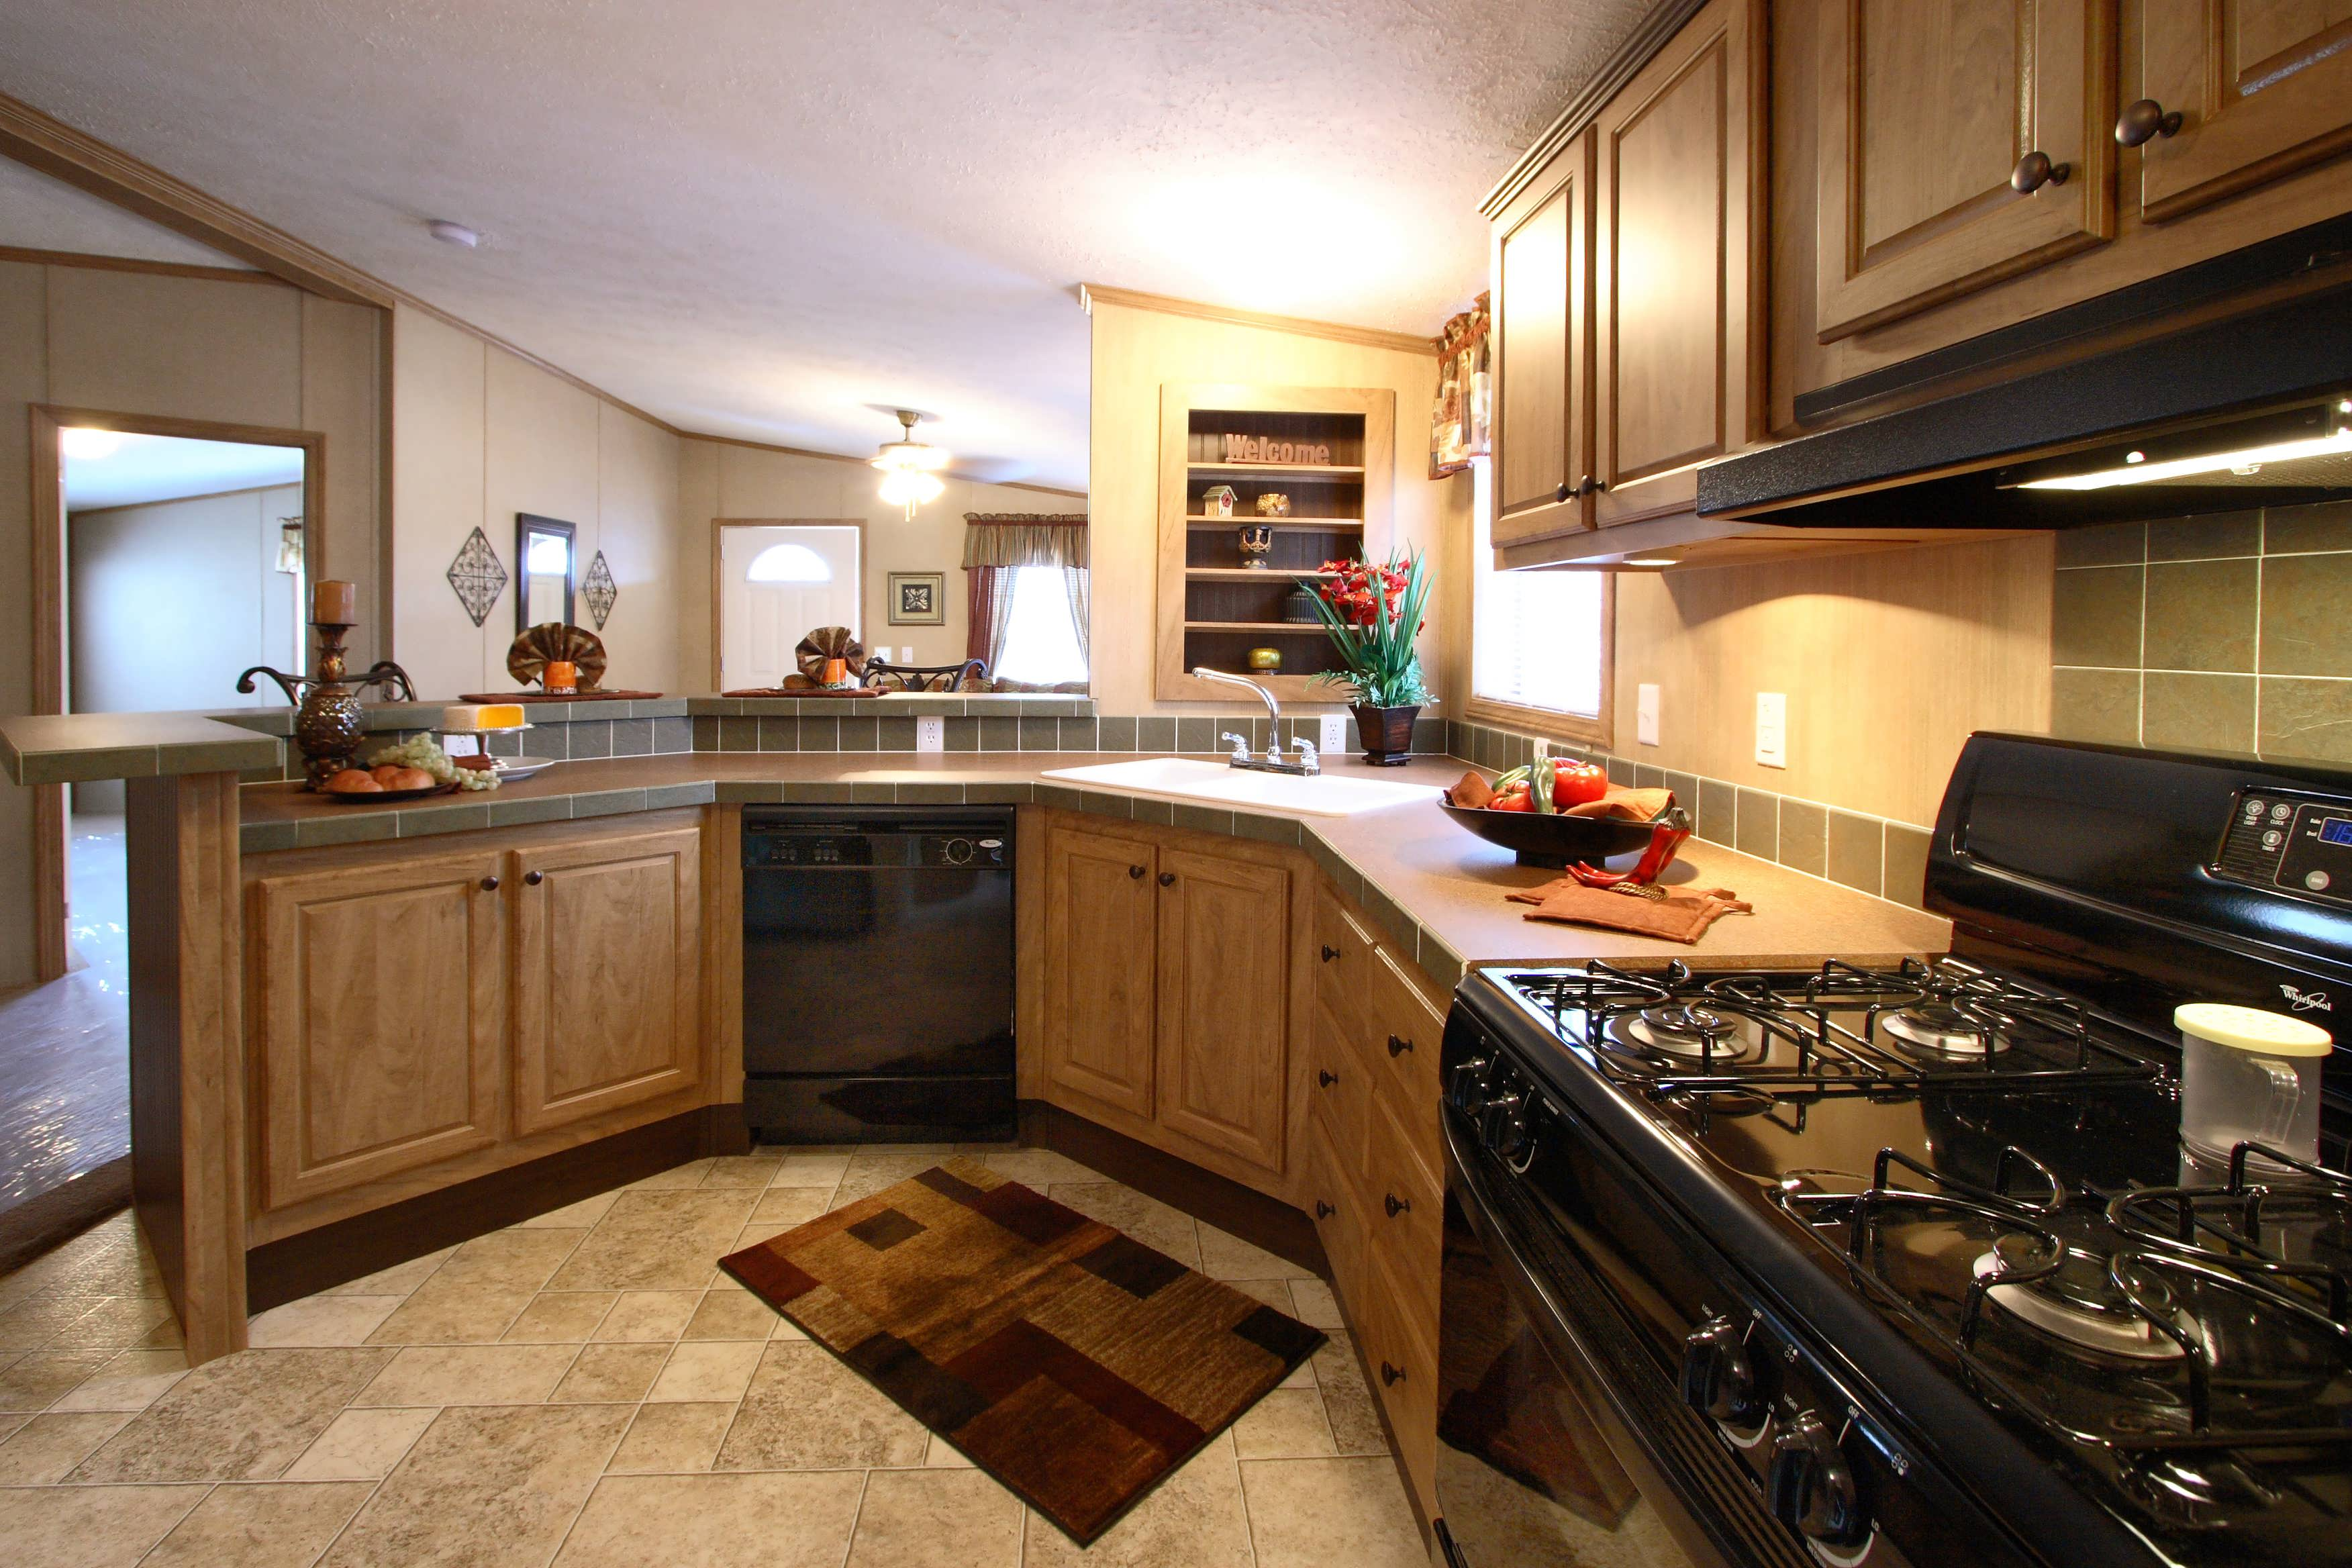 56J879 - Kitchen